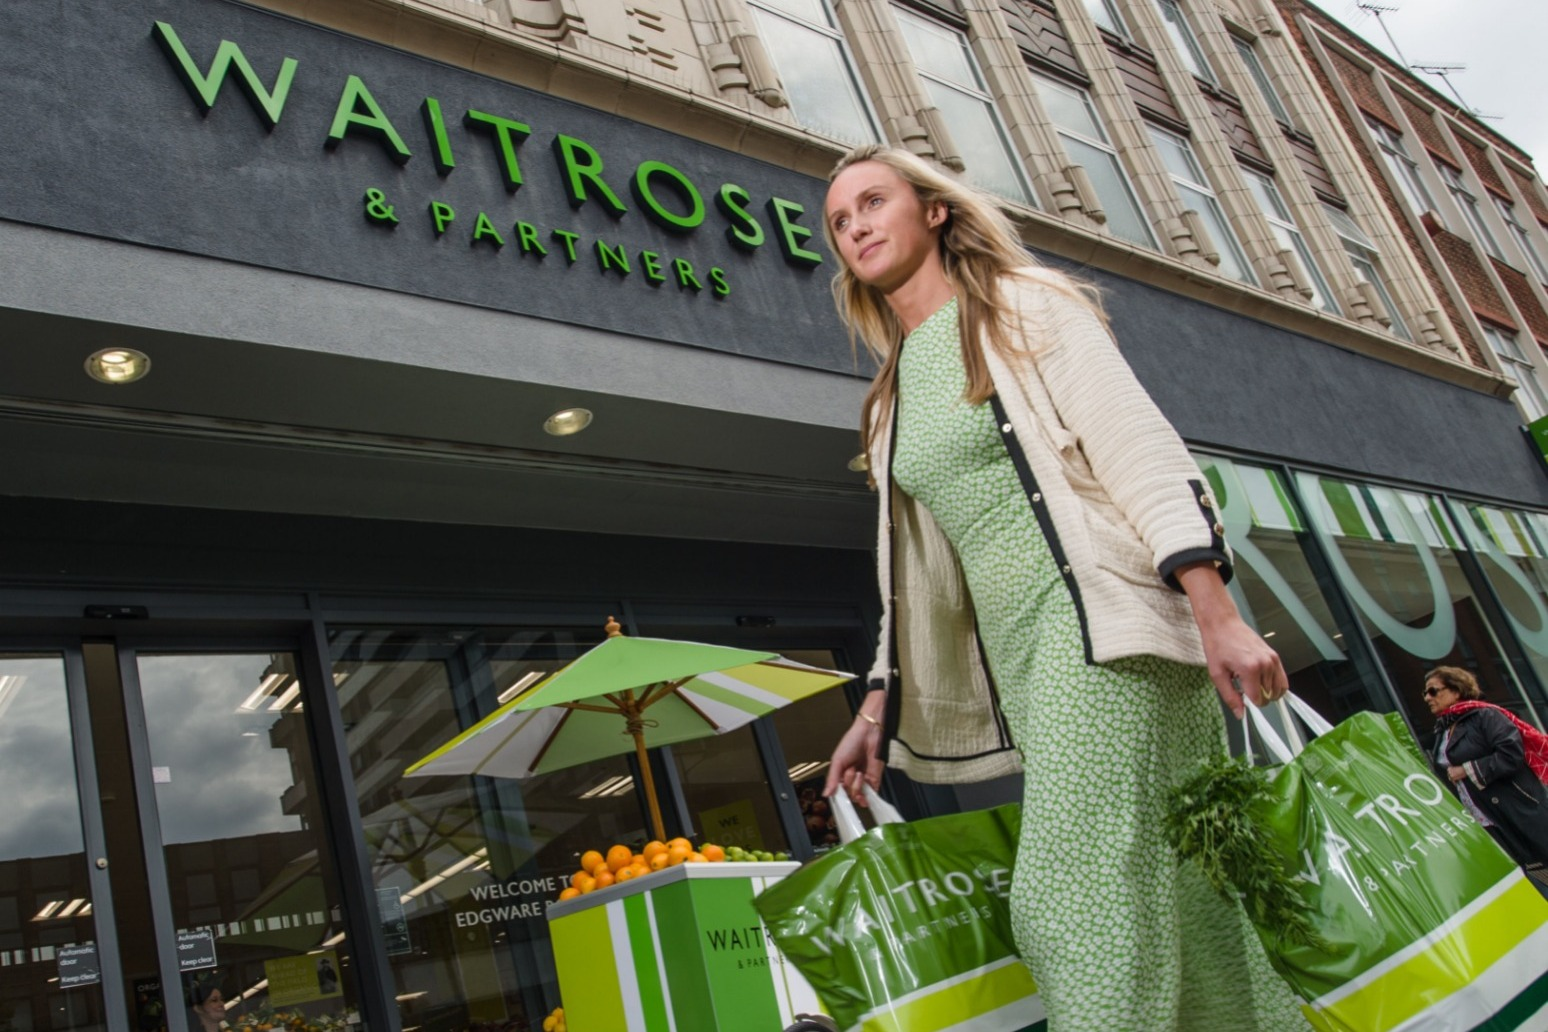 Waitrose to remove plastic bags from deliveries and in-store collections